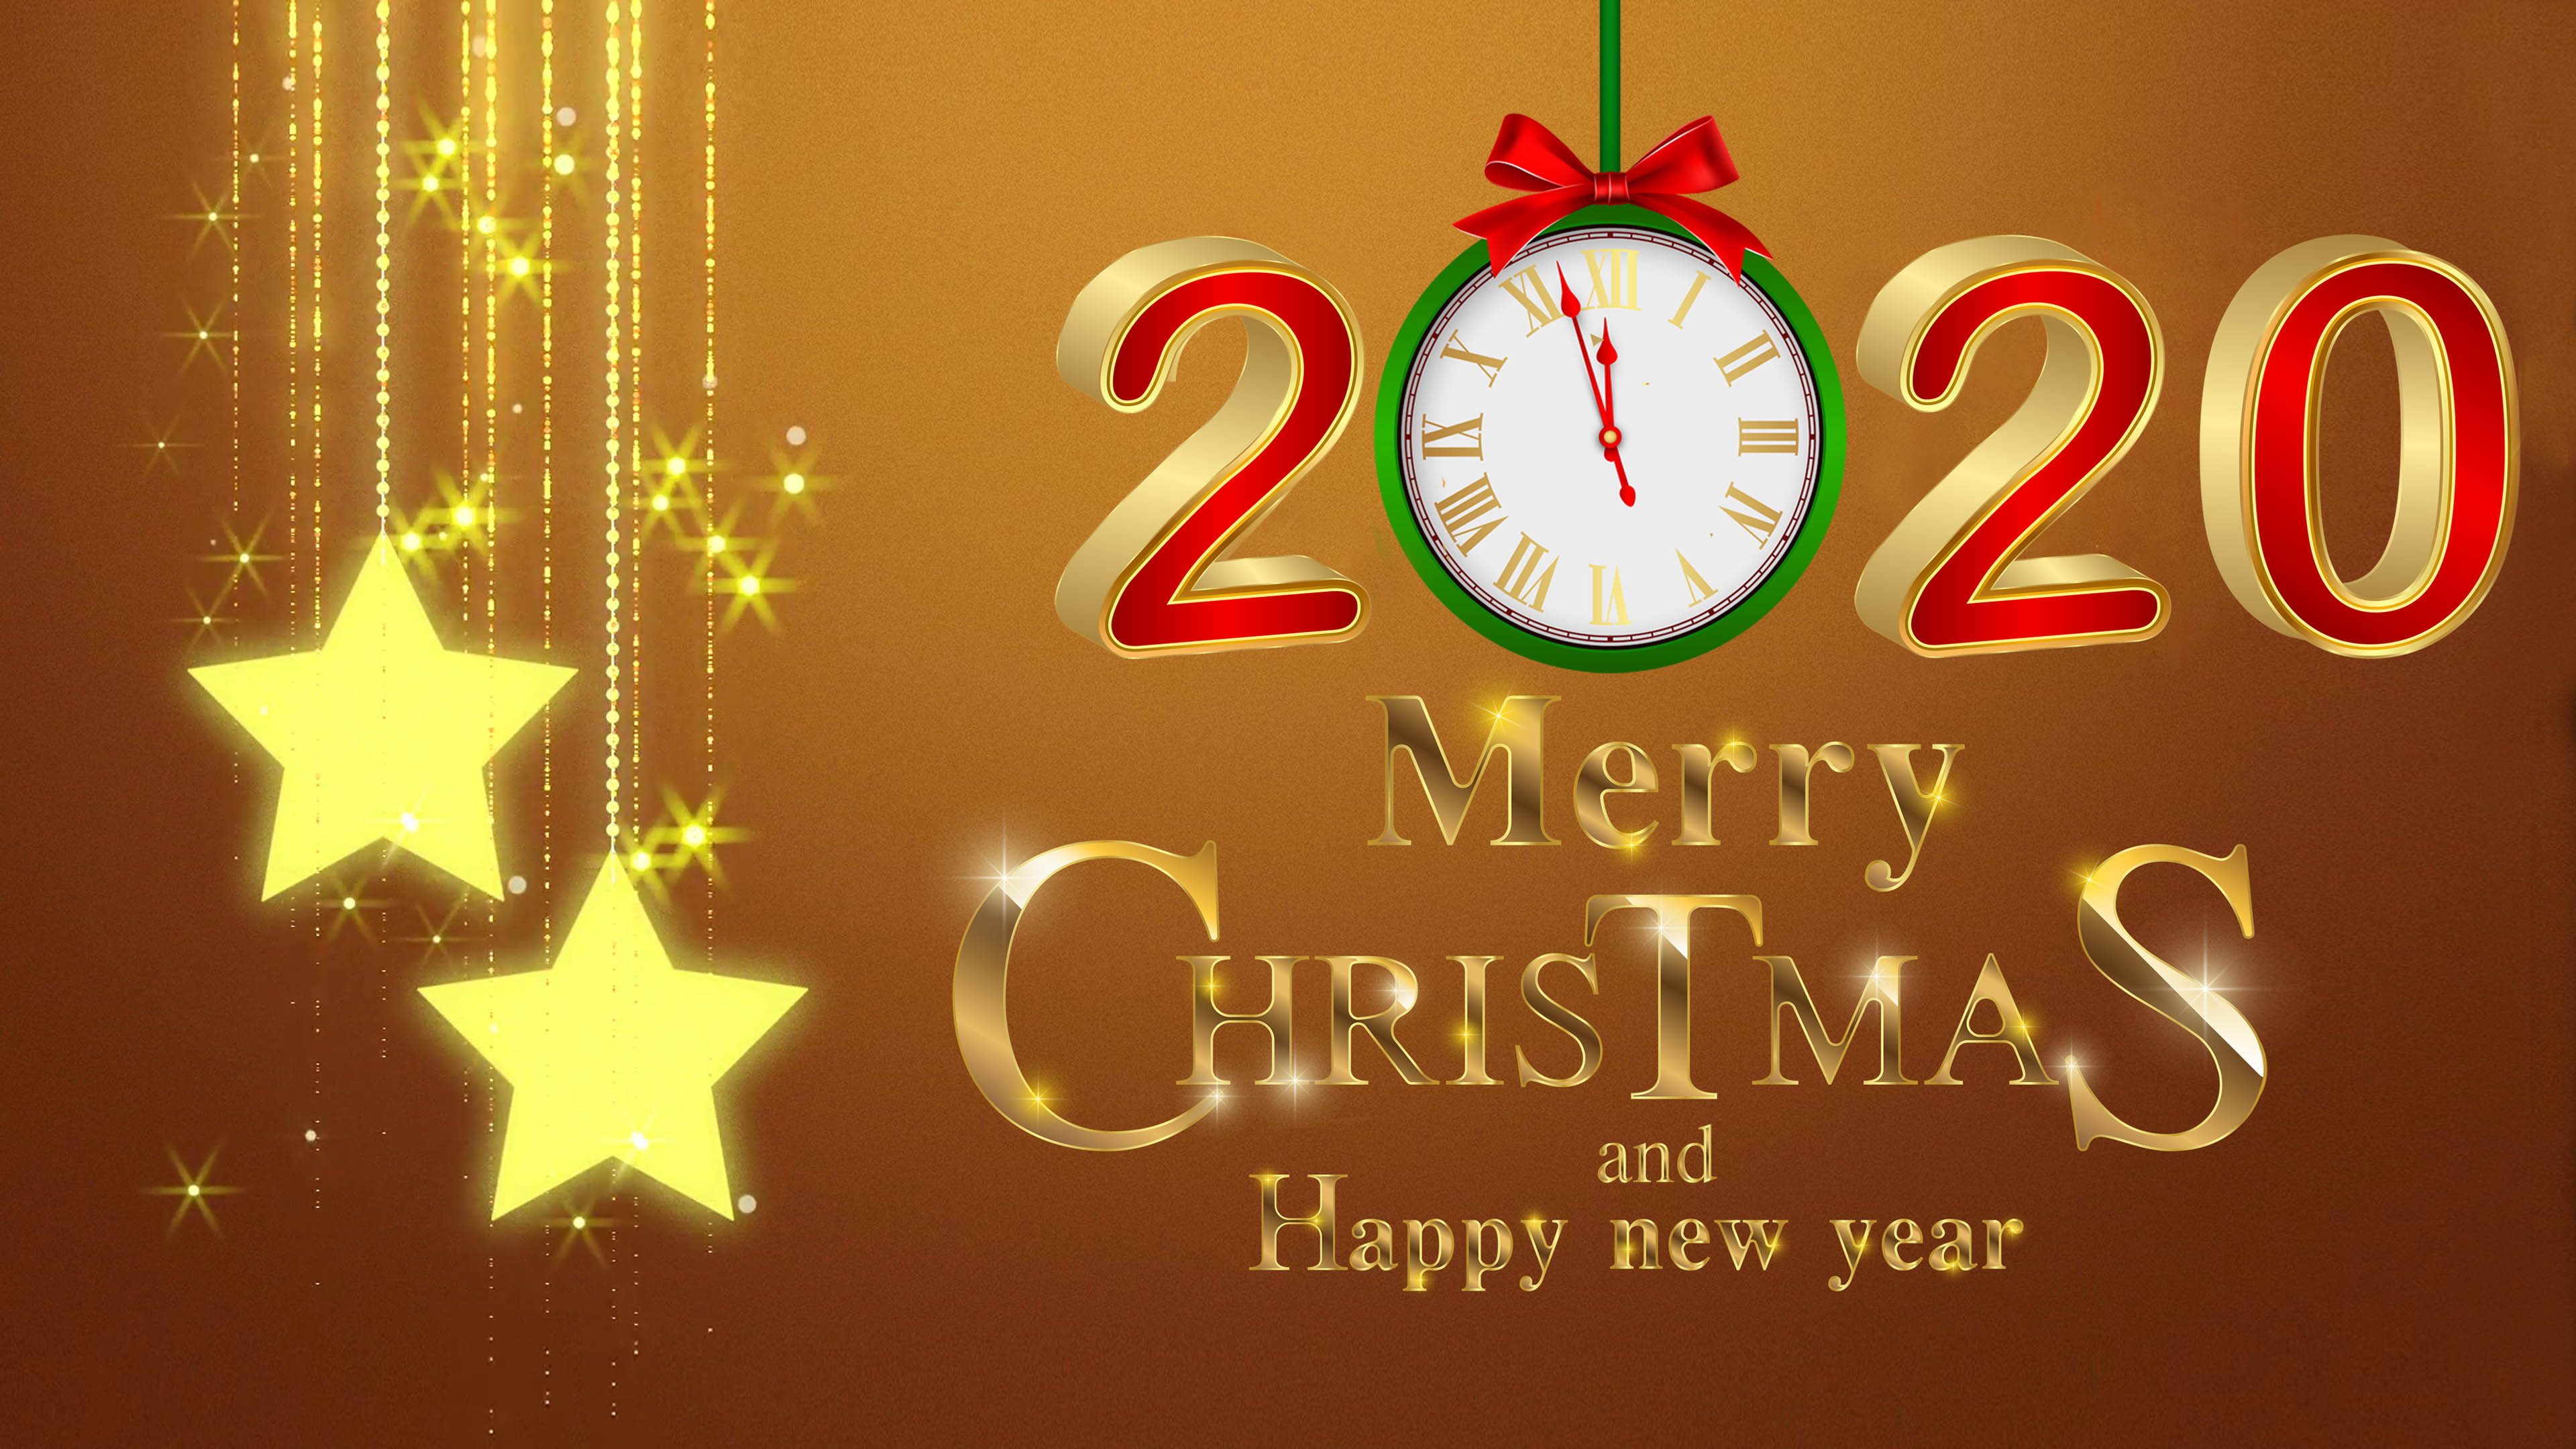 Anime Merry Christmas And Happy New Year 2020 Free download 24] Merry Christmas Happy 2020 Wallpapers on